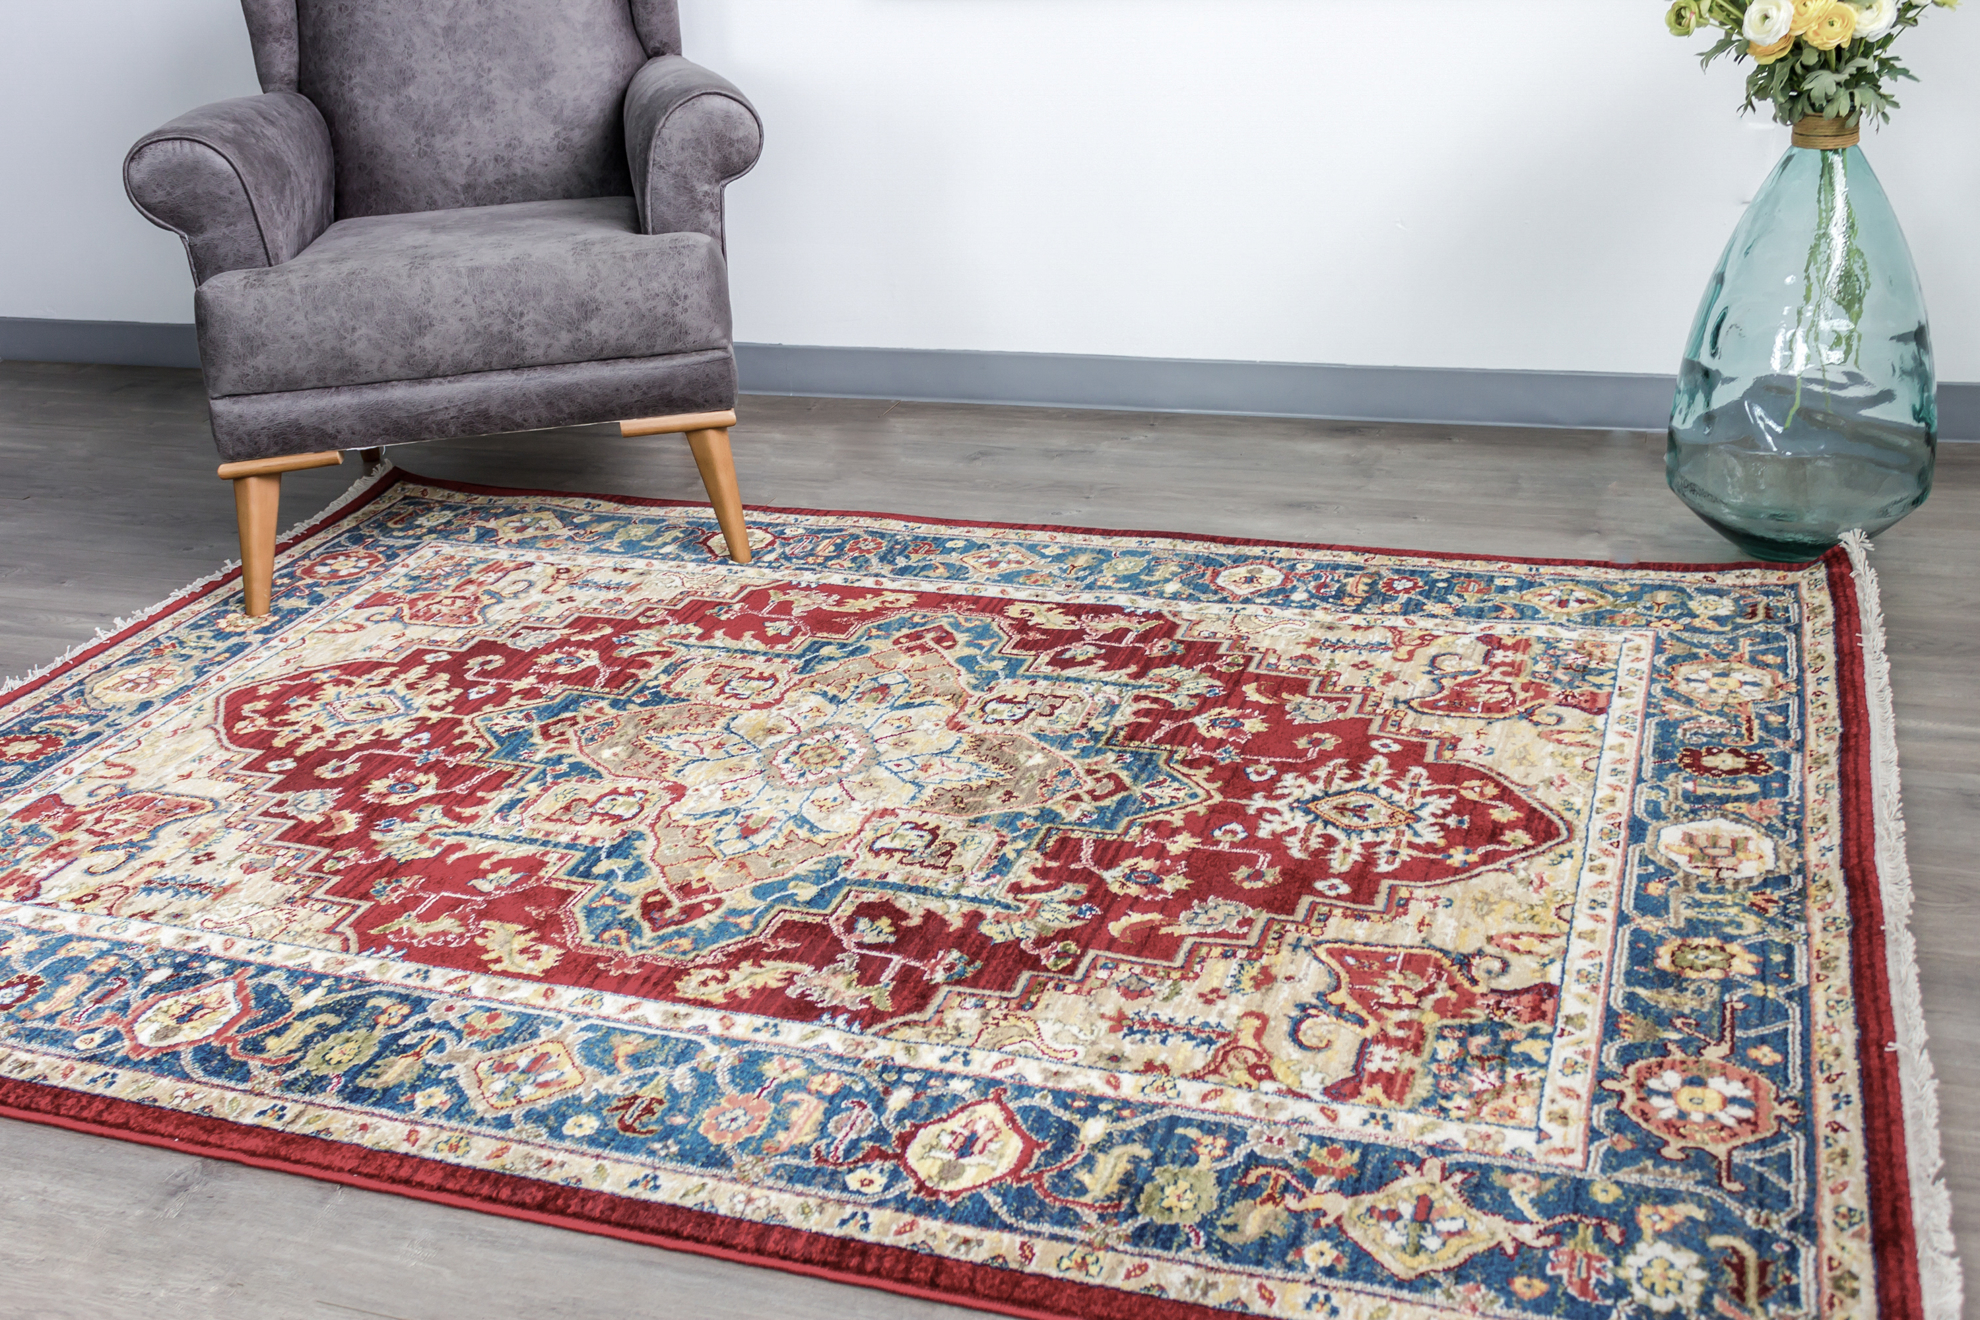 Picture of Rakkas Blue/Ivy Area Rug 8x10ft